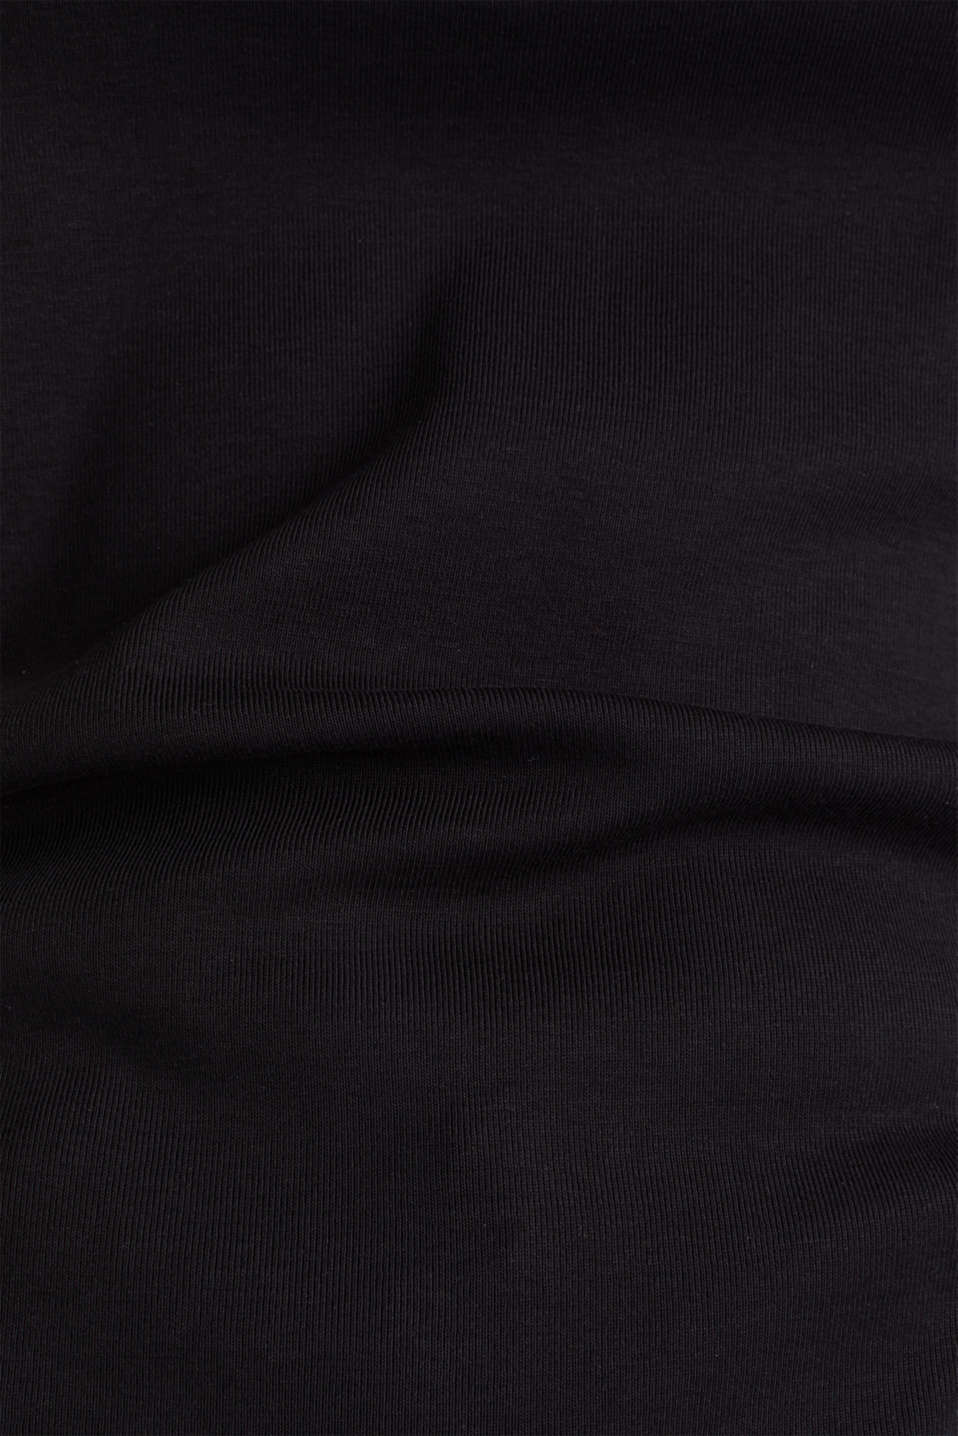 T-shirt with a rhinestone logo, 100% cotton, BLACK, detail image number 4